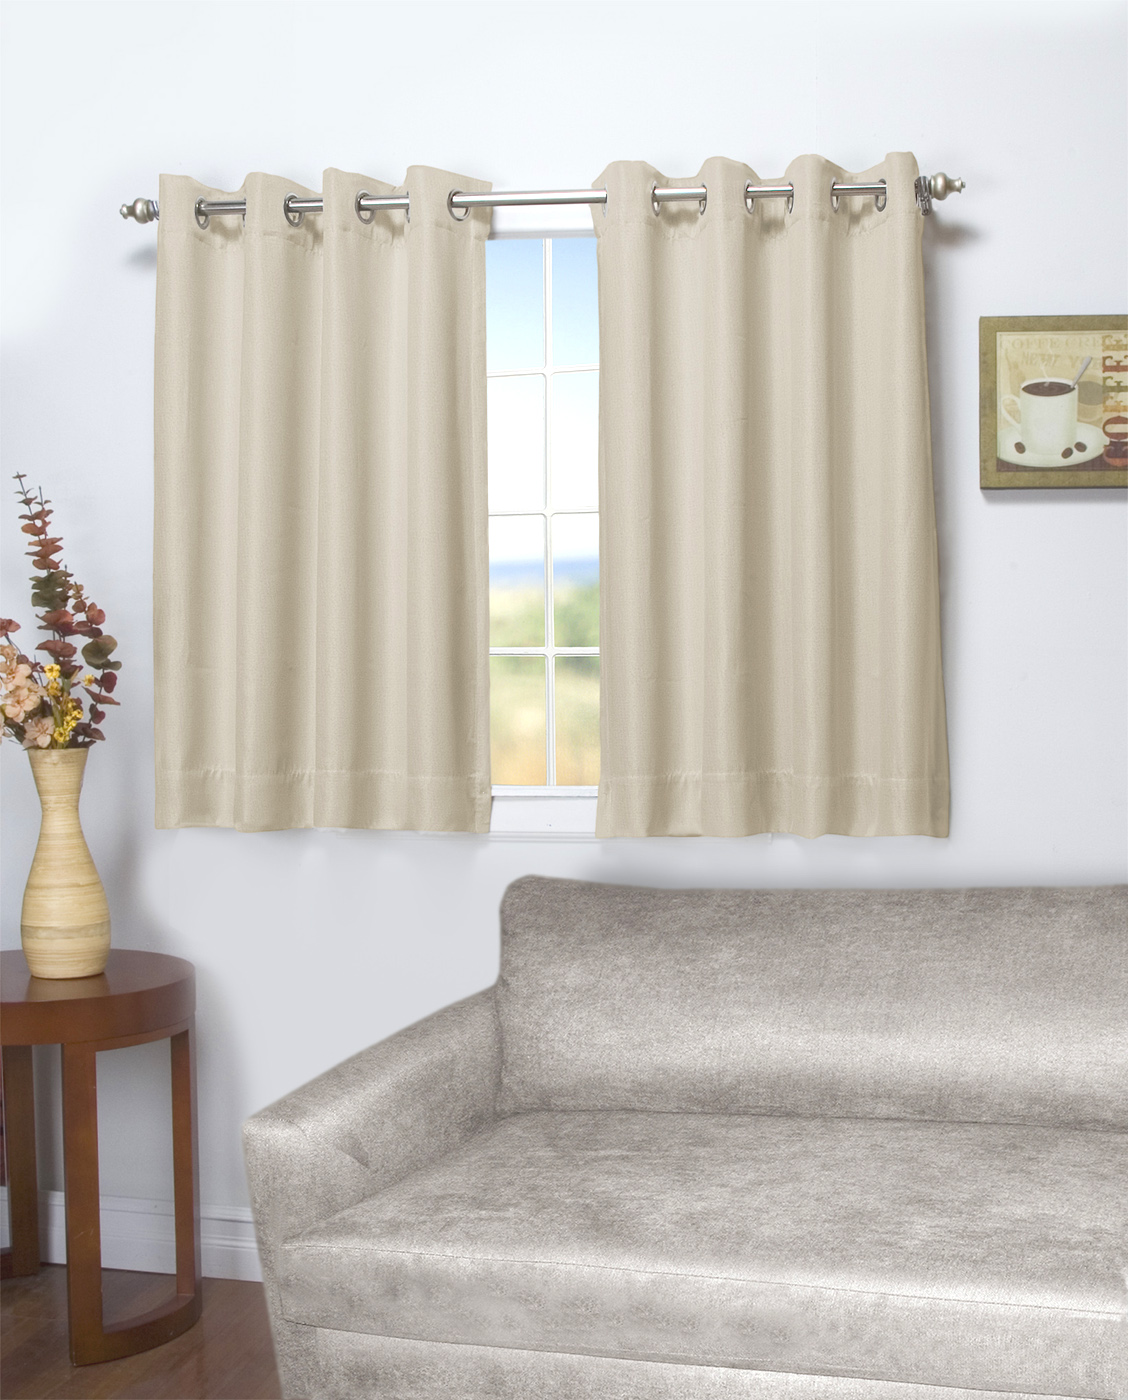 45-Inch Long Curtains - TheCurtainShop.com